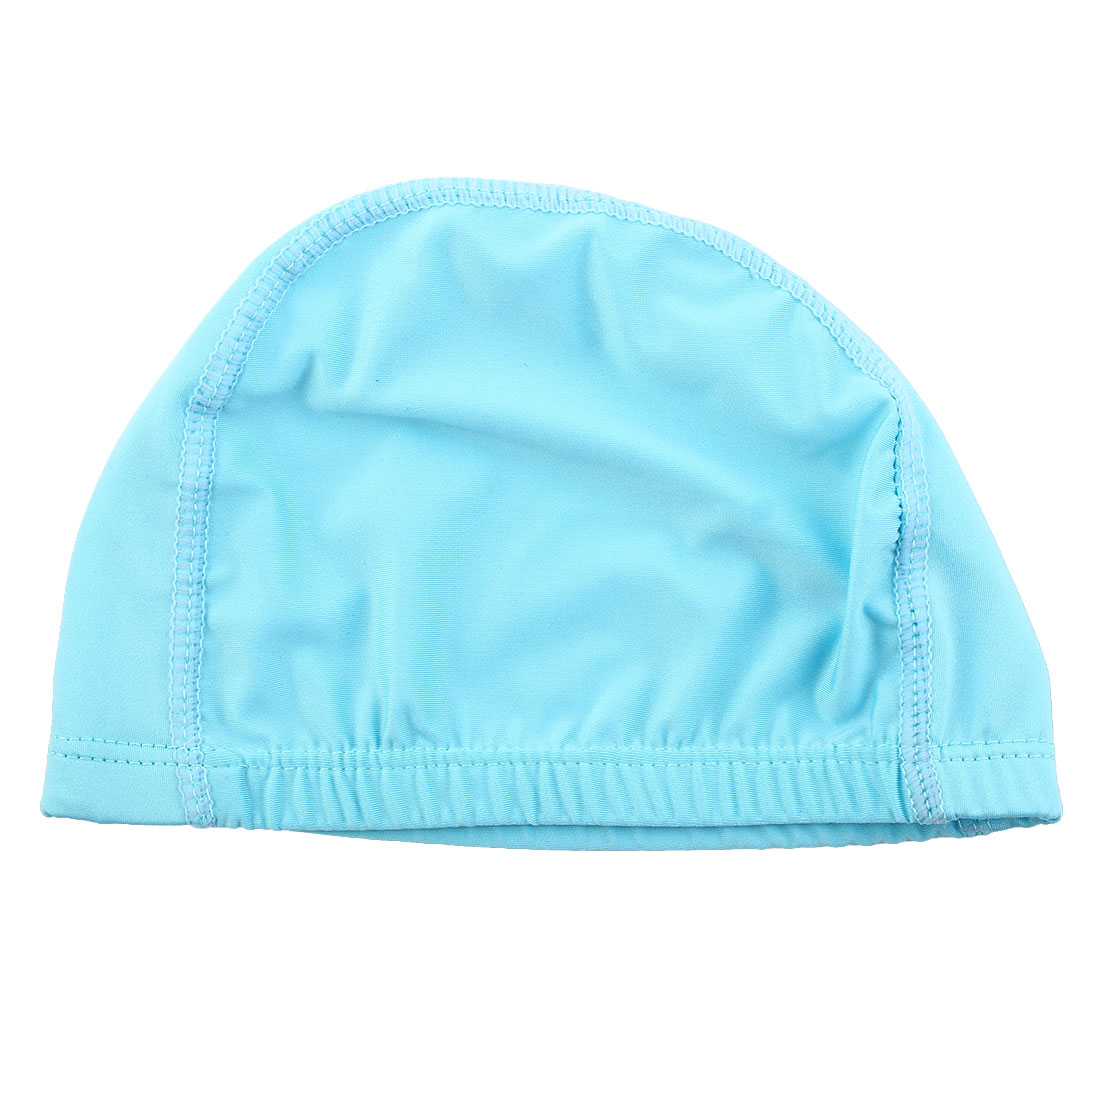 Unisex Polyester Dome Shaped Water Resistant Stretchable Swimming Cap Portable Bathing Hat Sky Blue